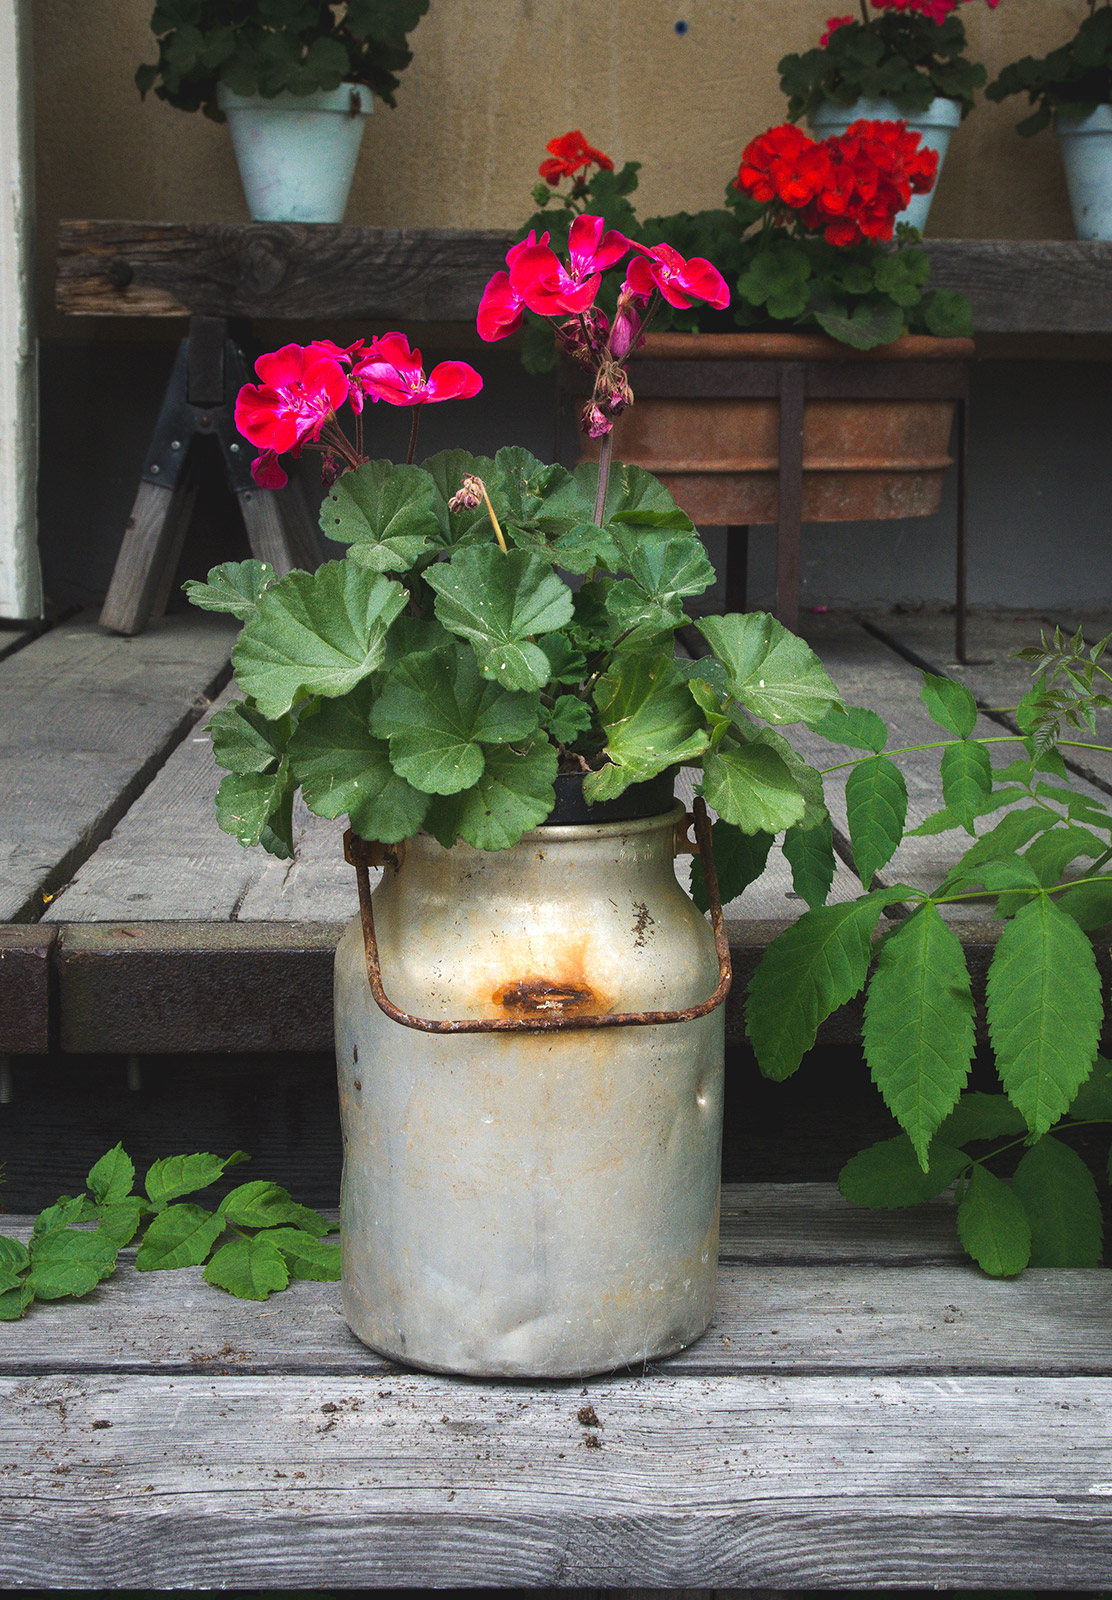 Geraniums in milk pail